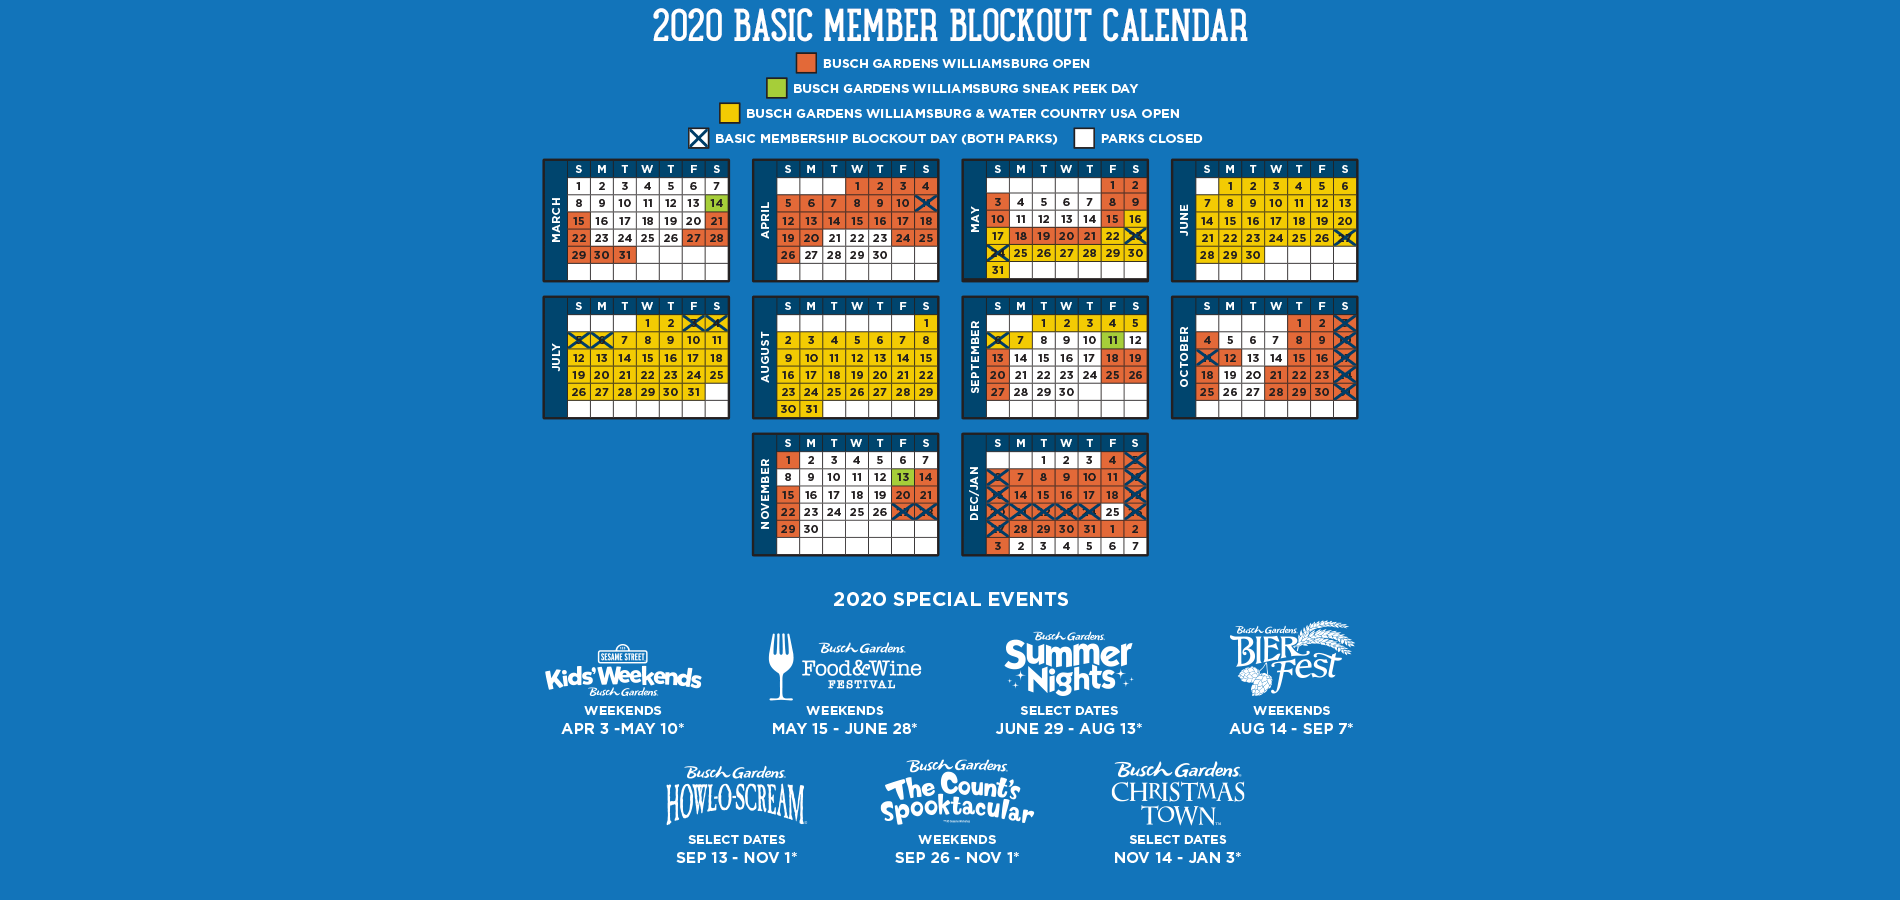 Basic Membership's 2019 Blockout Dates